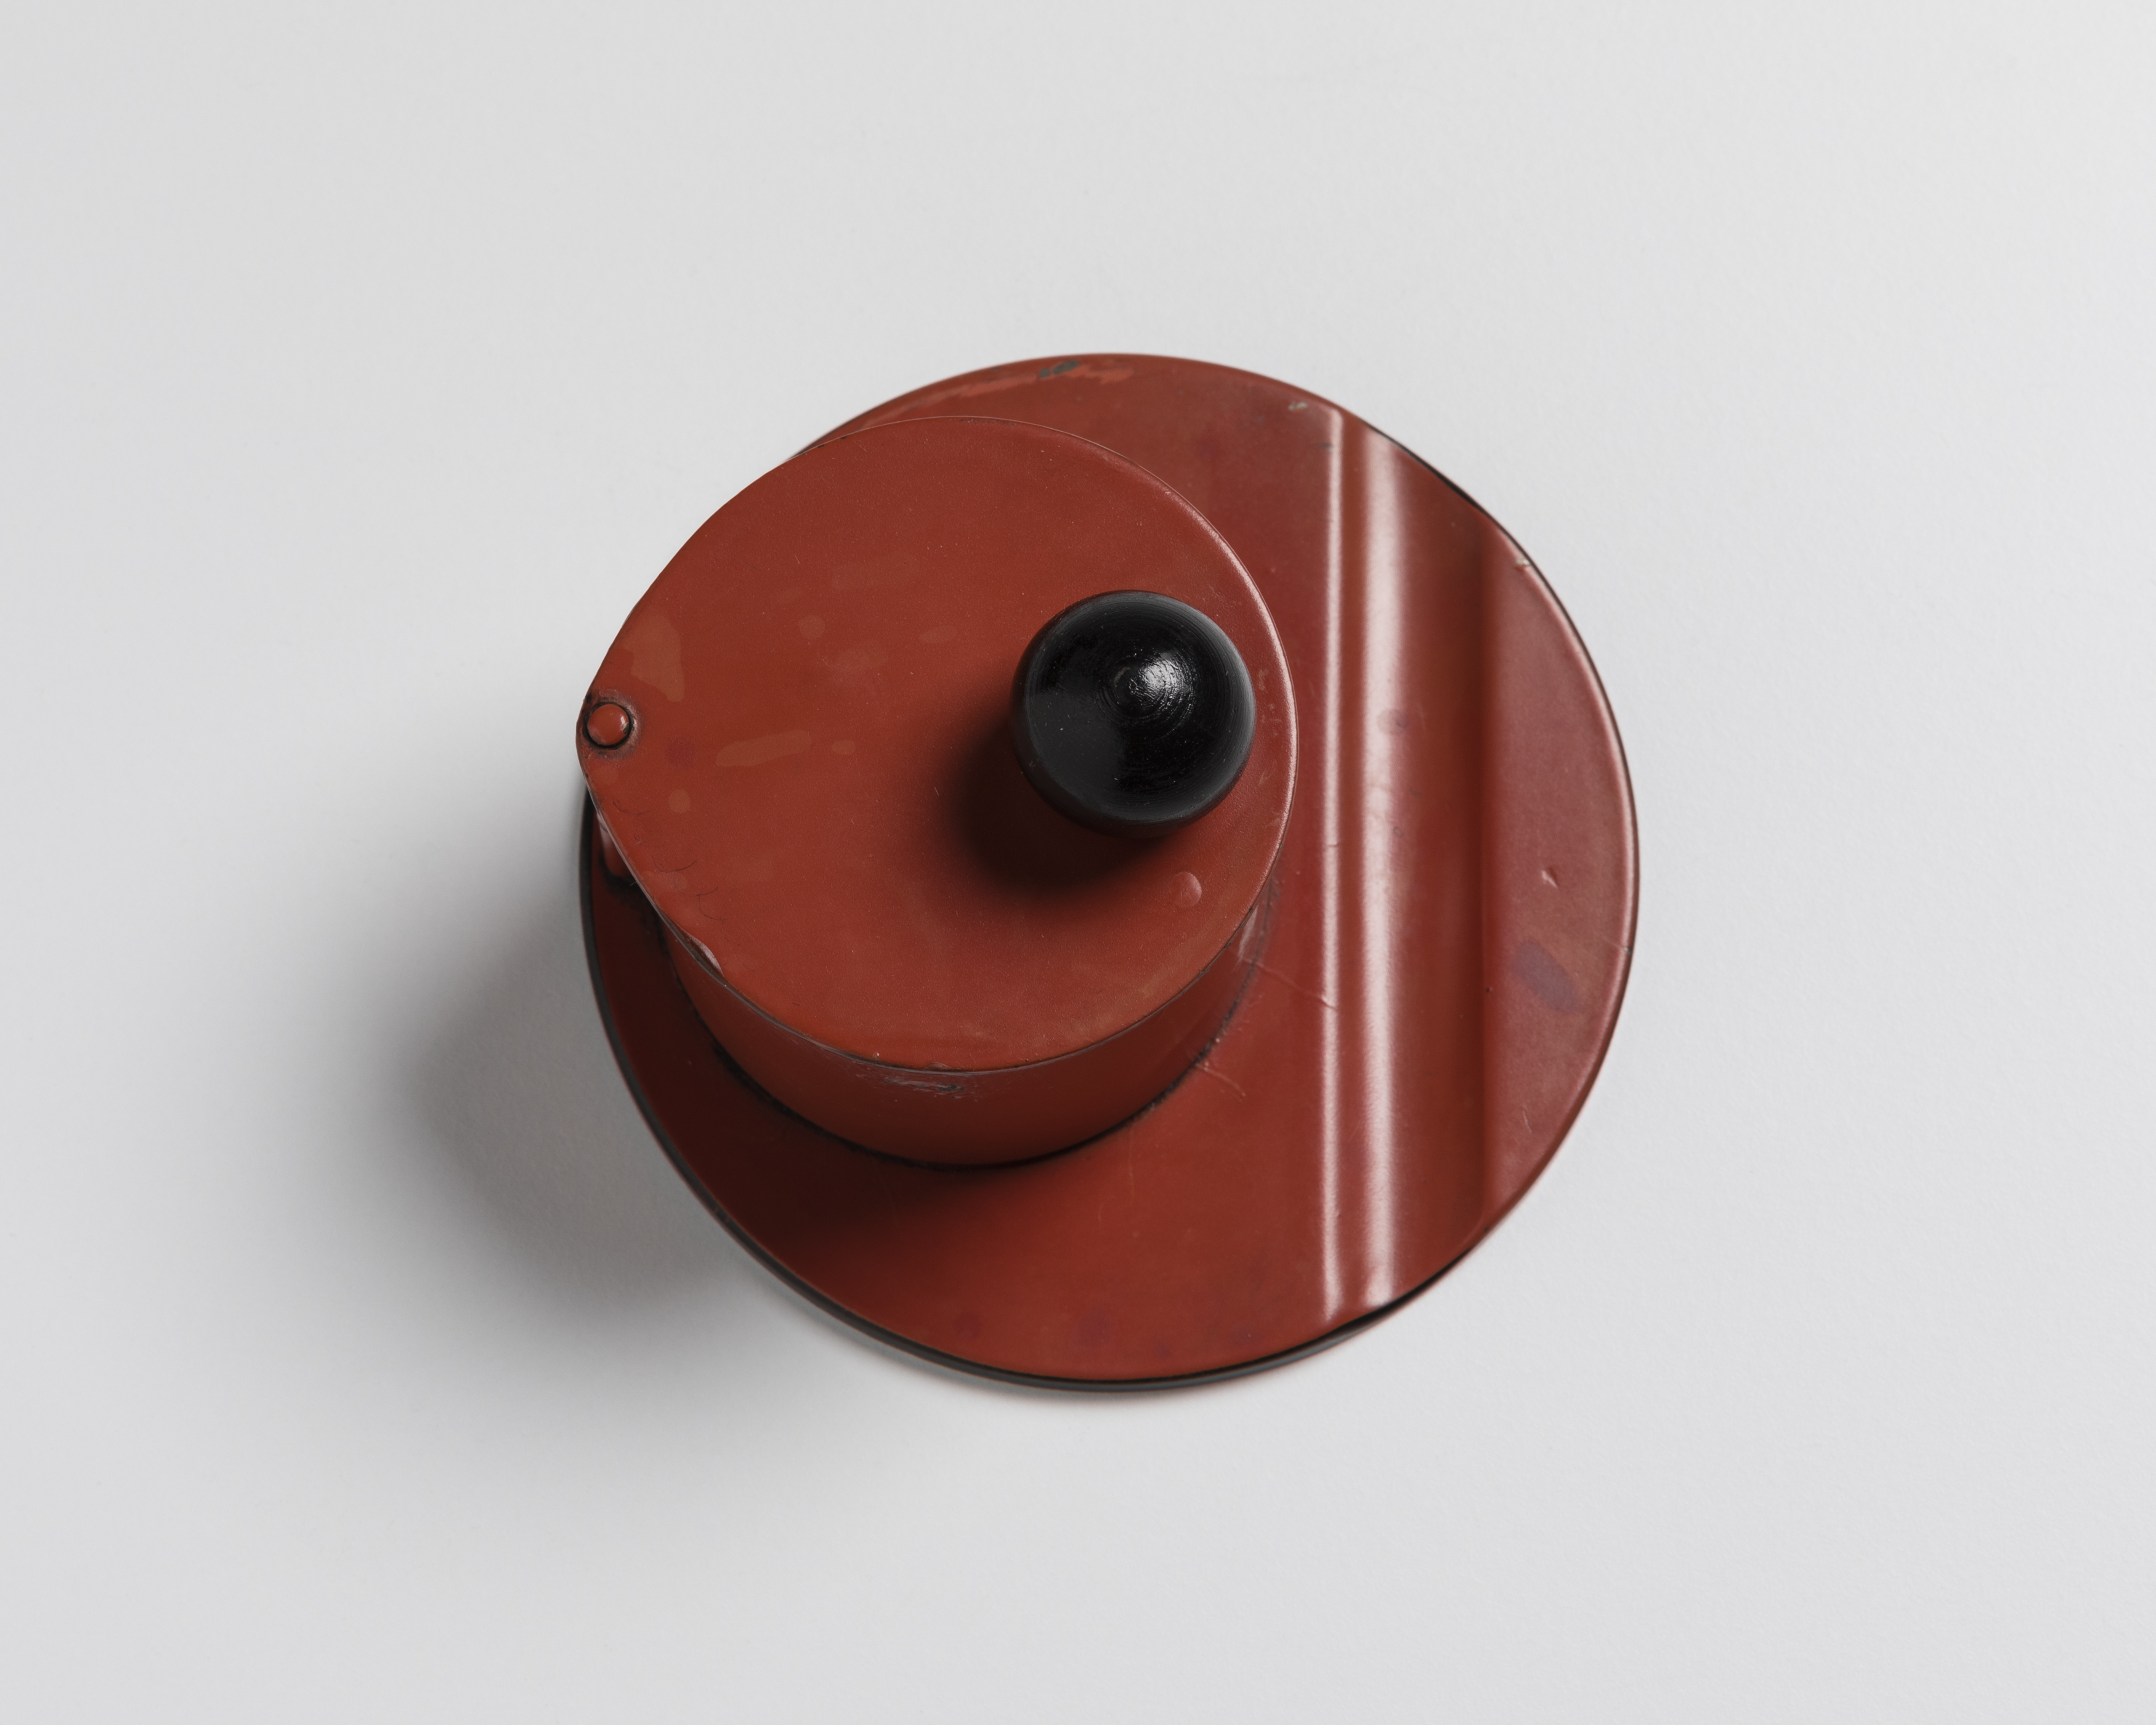 Red circular inkstand with a black ball finial on hinged cover, photographed from above.